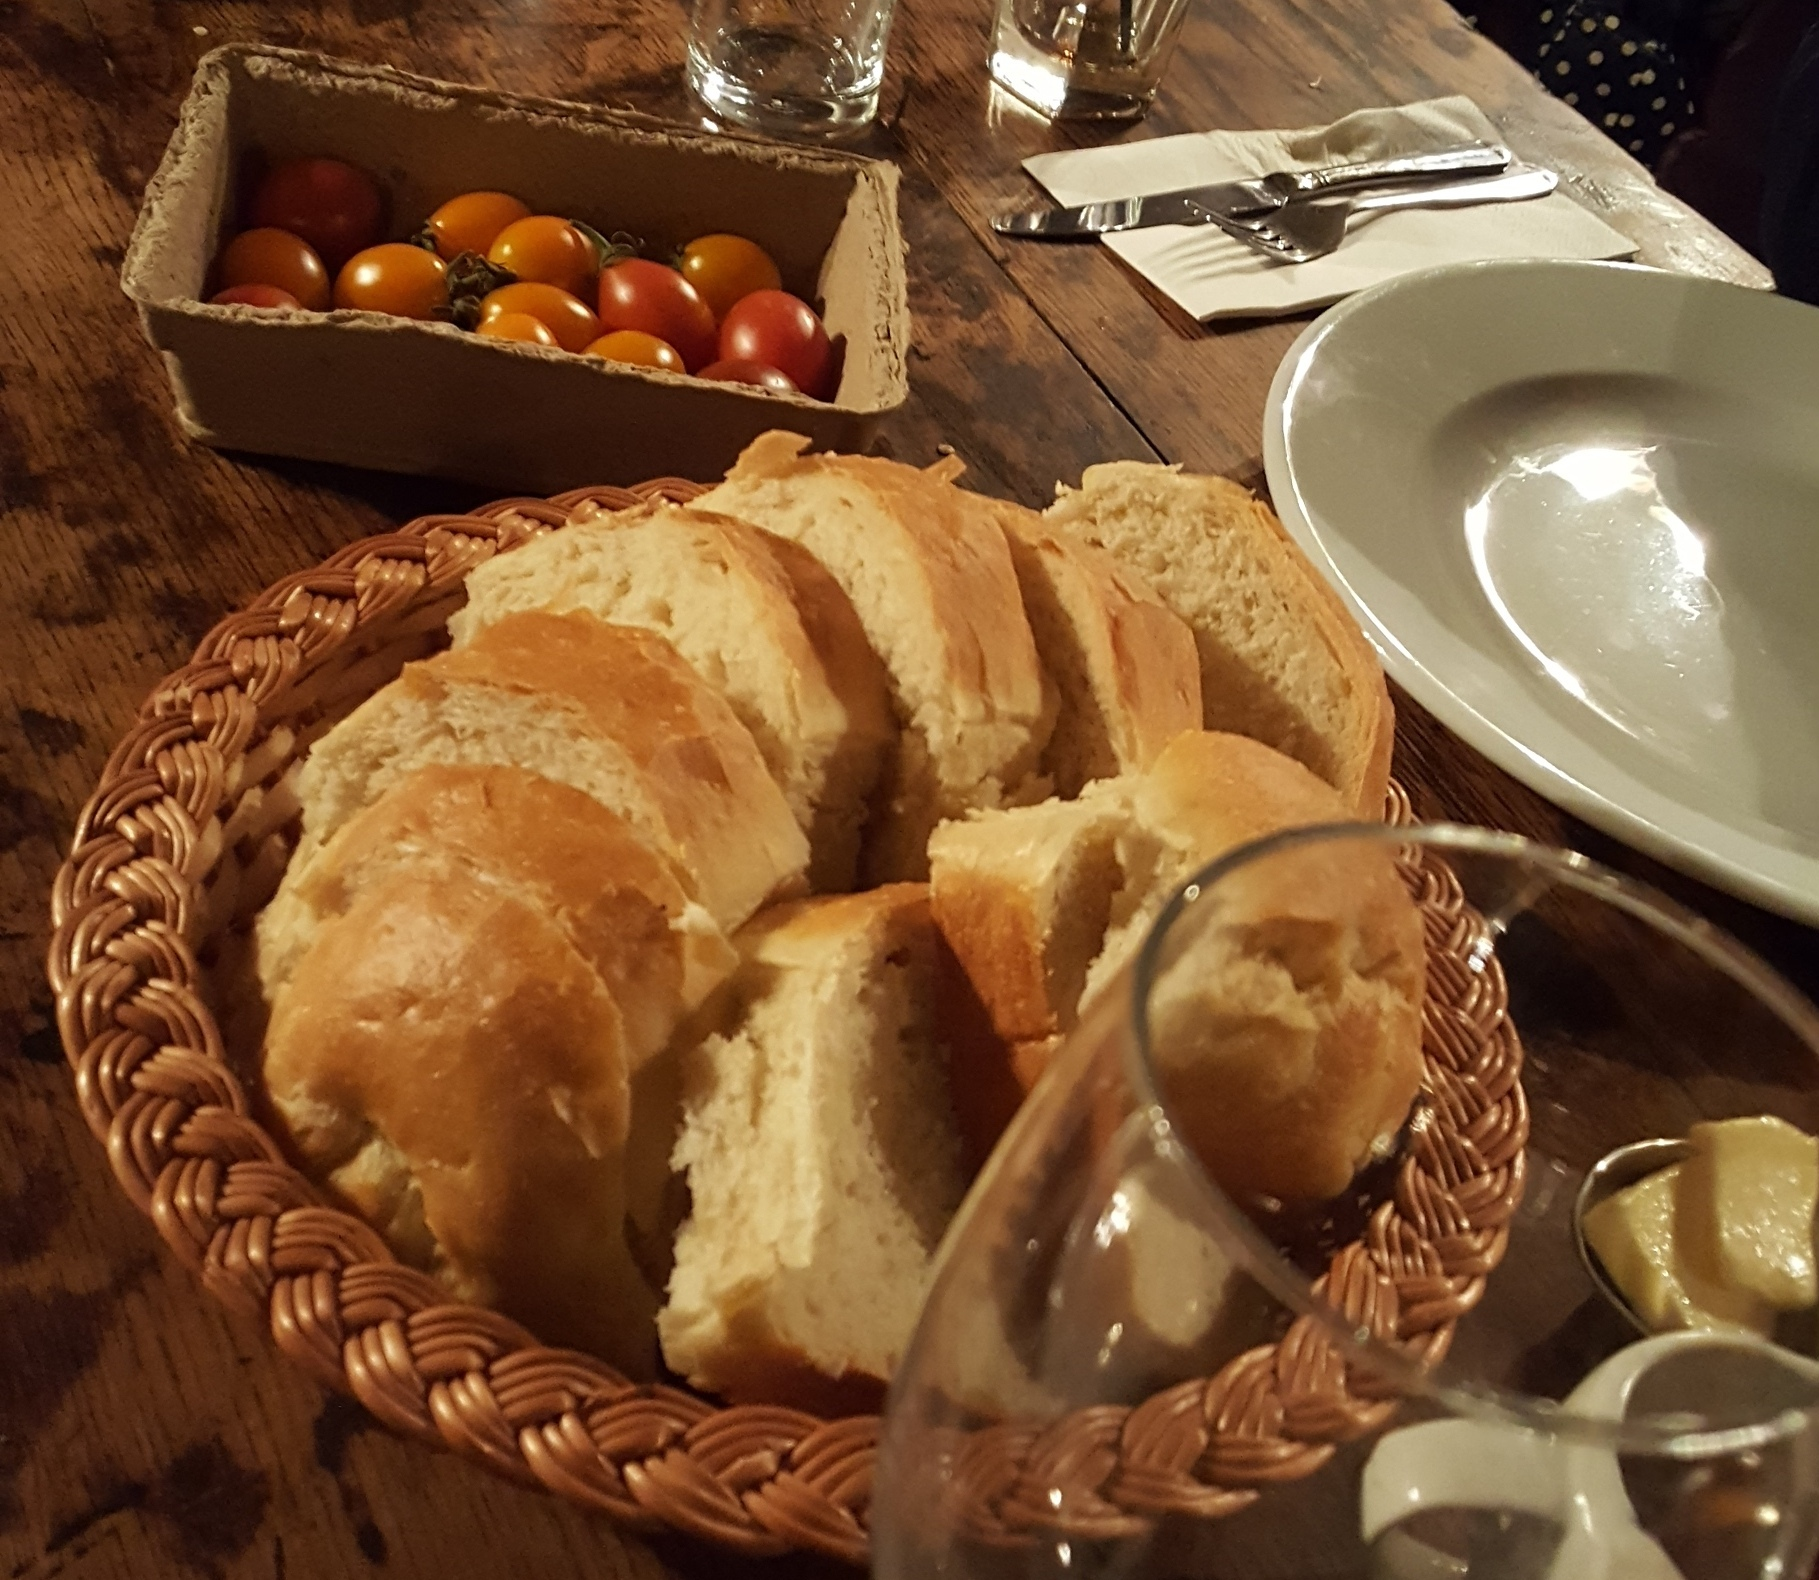 Fresh cut bread in a basket with a cardboard punnet of cherry tomatoes sad amidst place settings and a wine glass